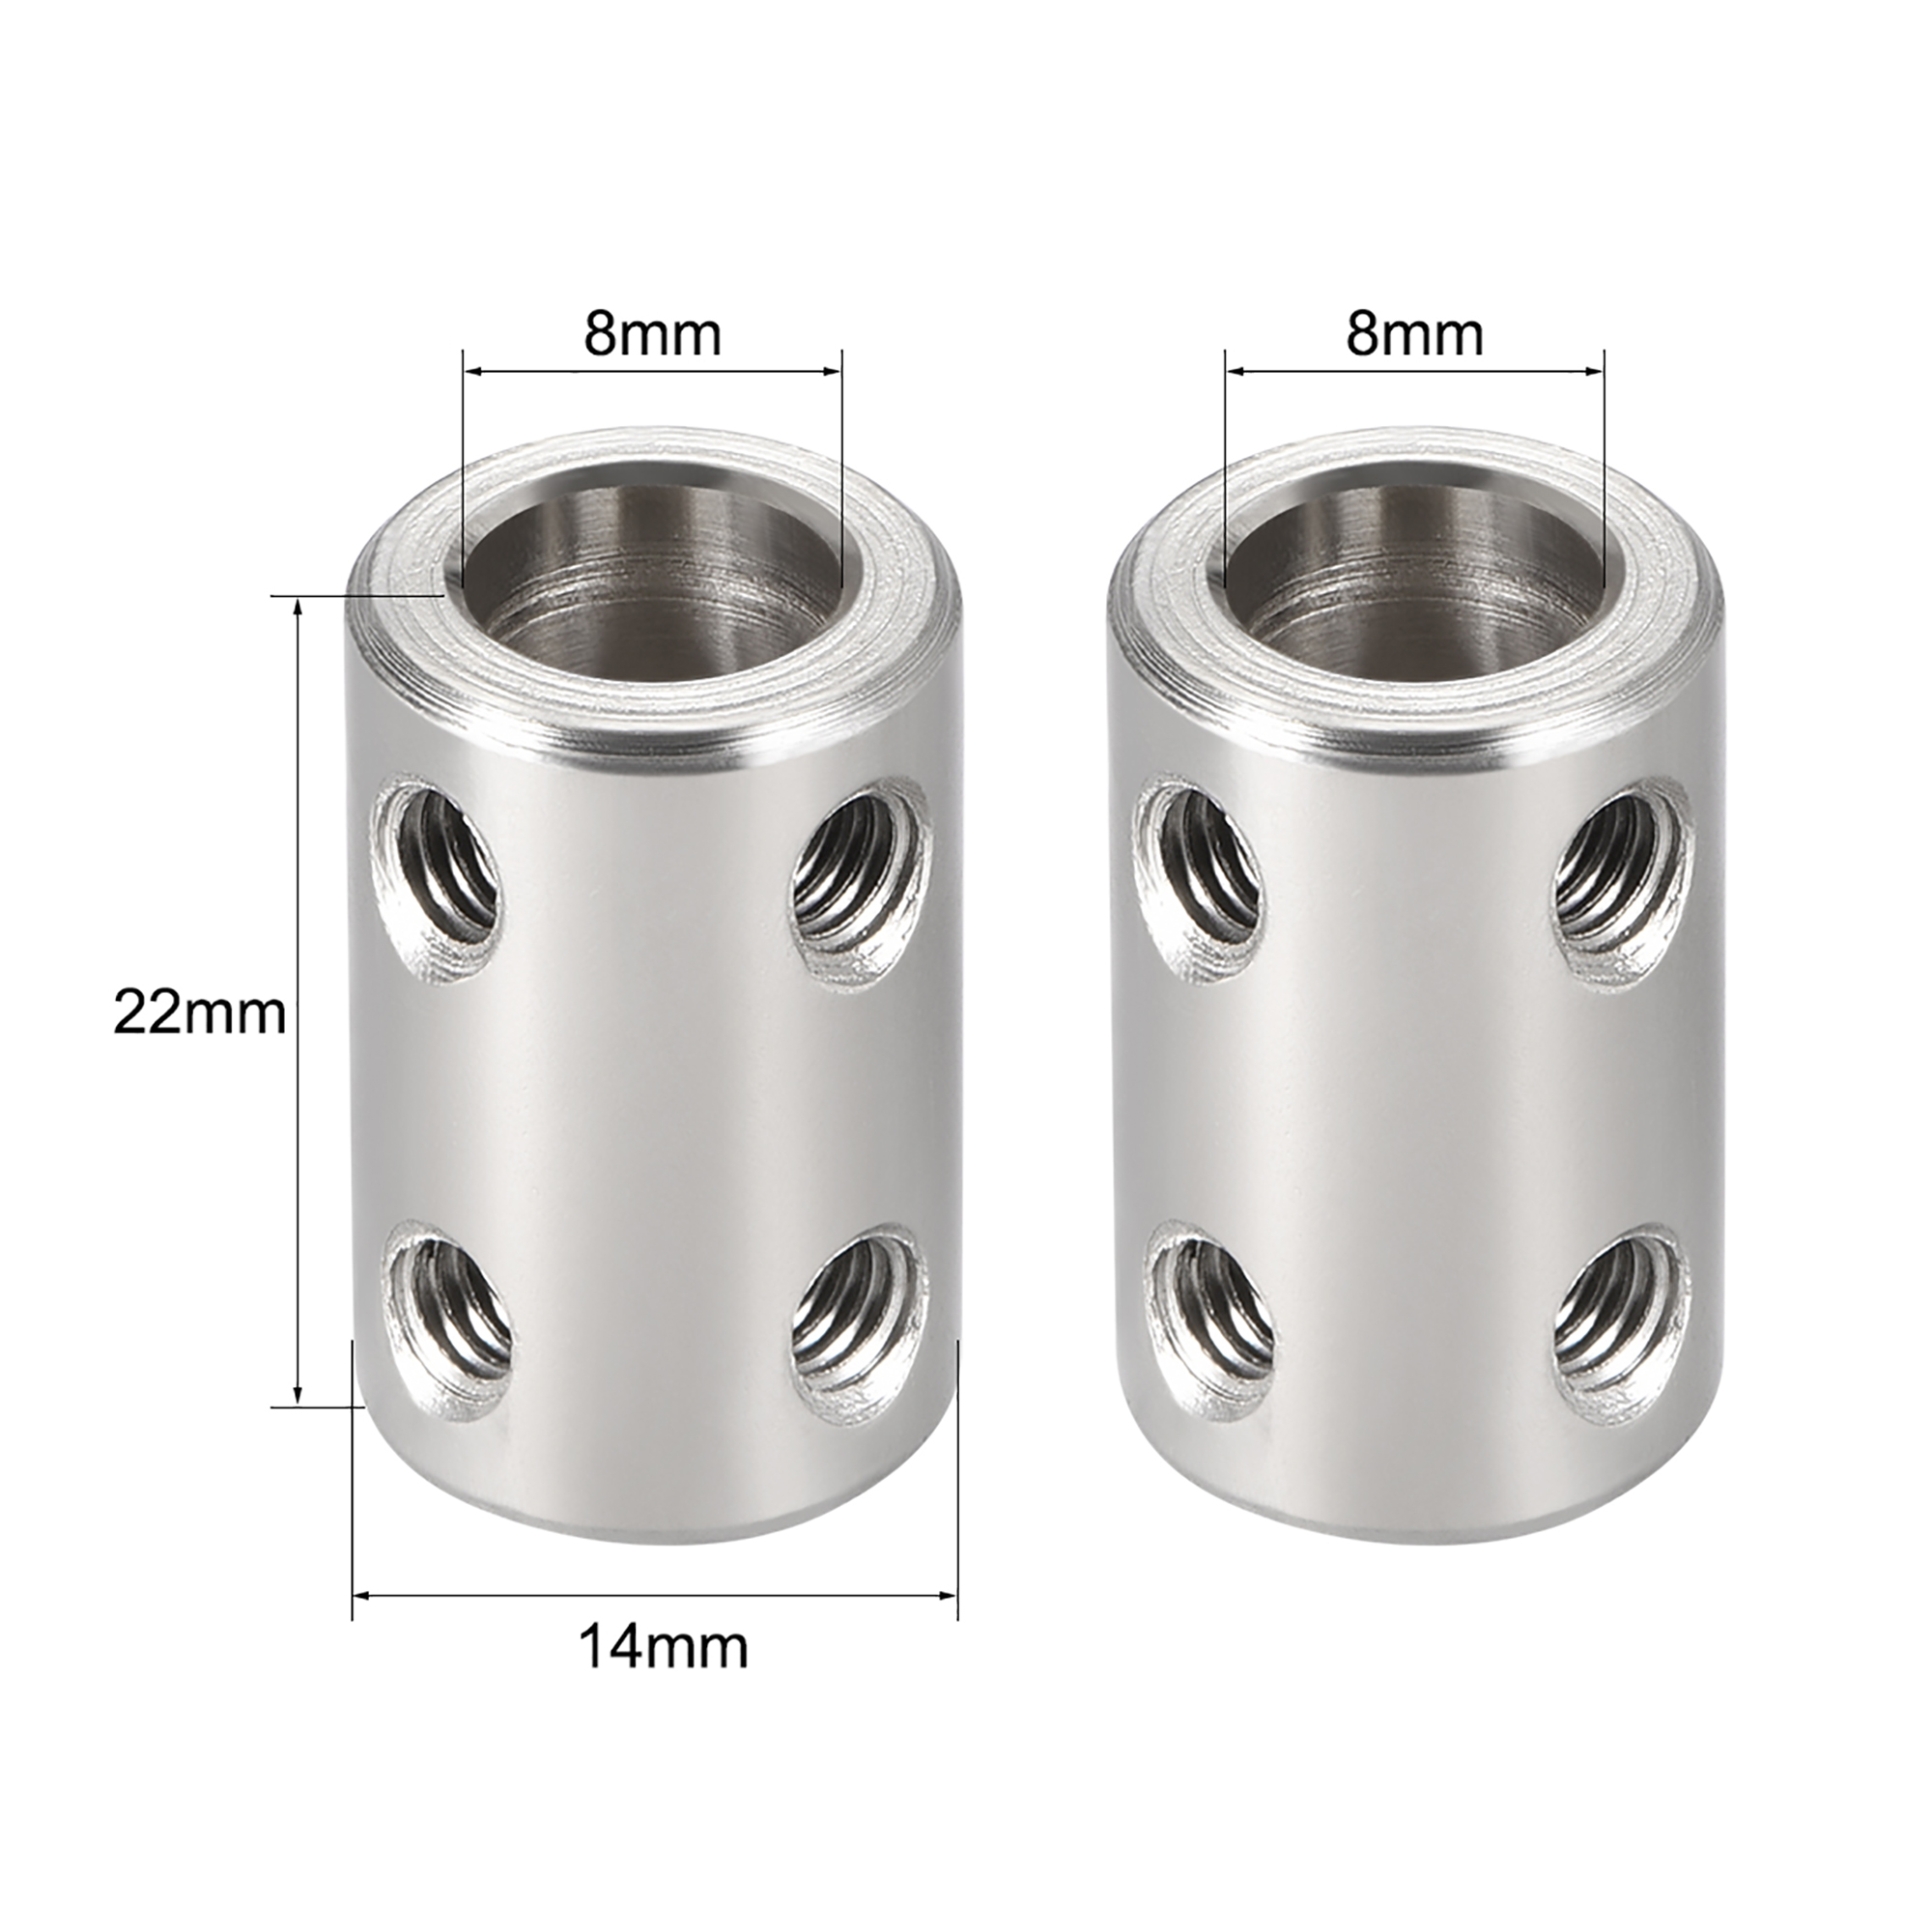 Shaft Coupling 8mm to 8mm Bore L22xD14 Robot Motor Wheel Rigid Coupler Connector Silver Tone - image 1 of 3